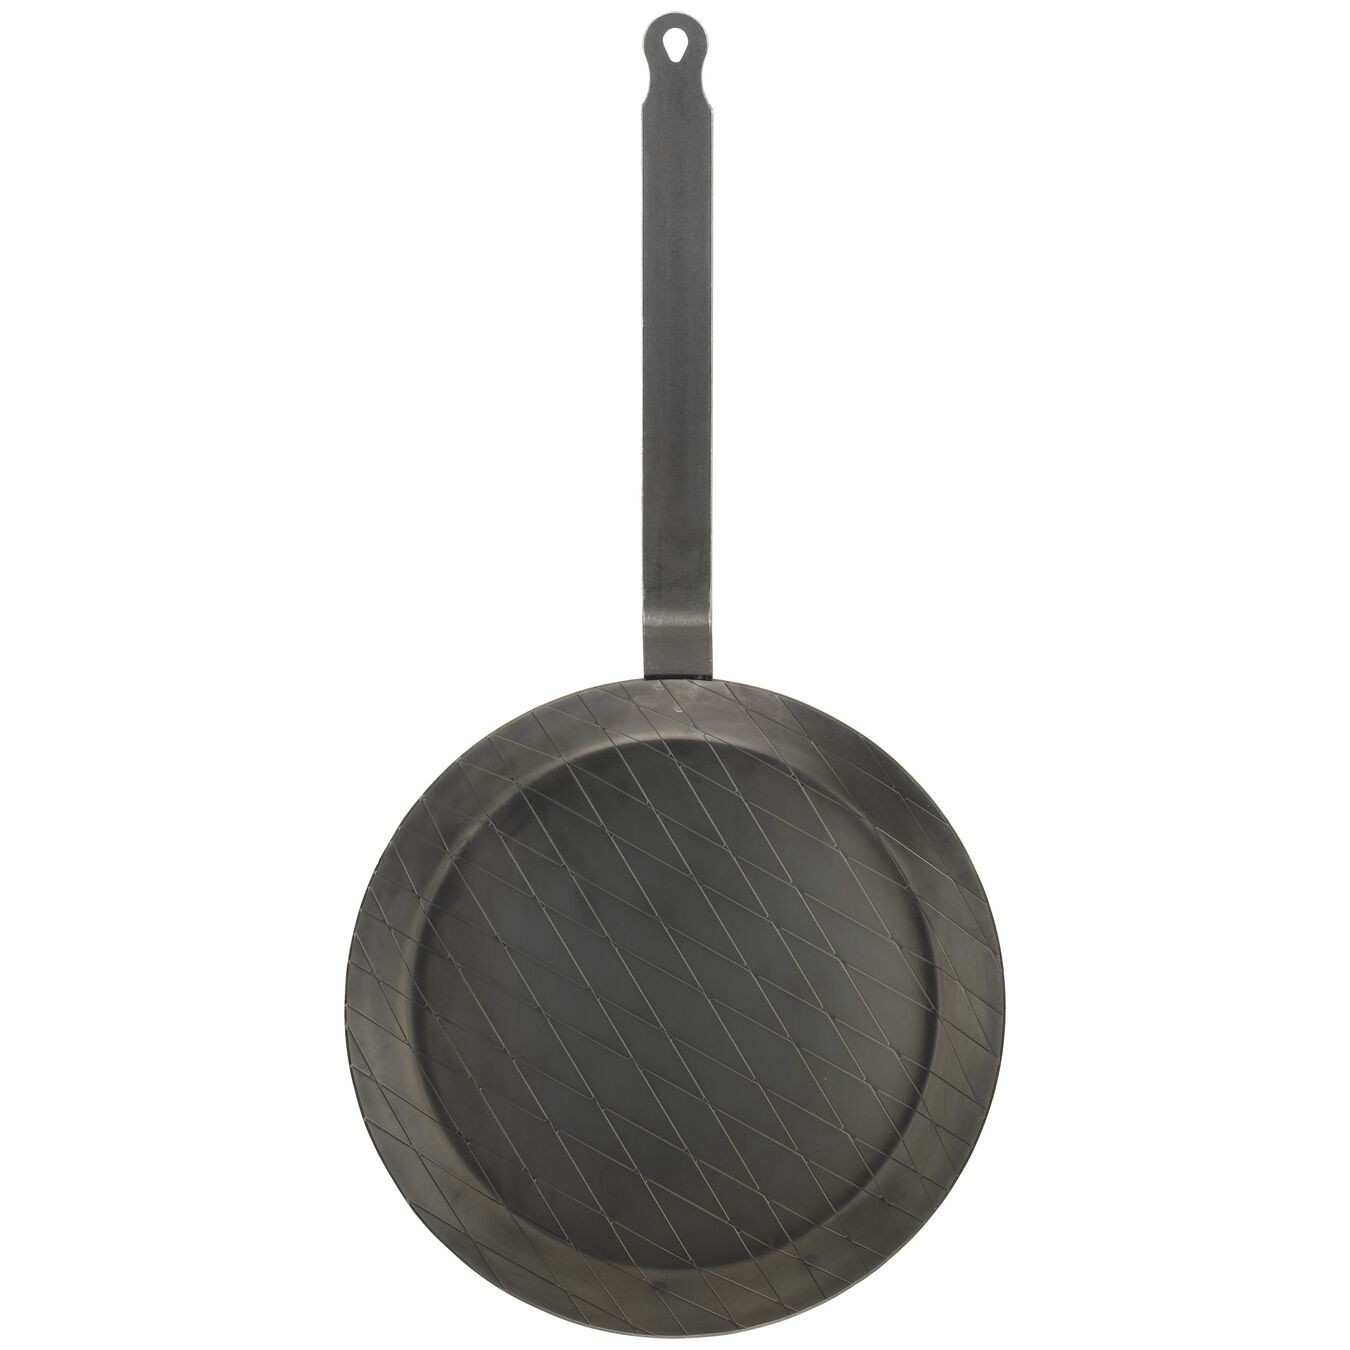 28 cm / 11 inch Carbon steel Frying pan,,large 2